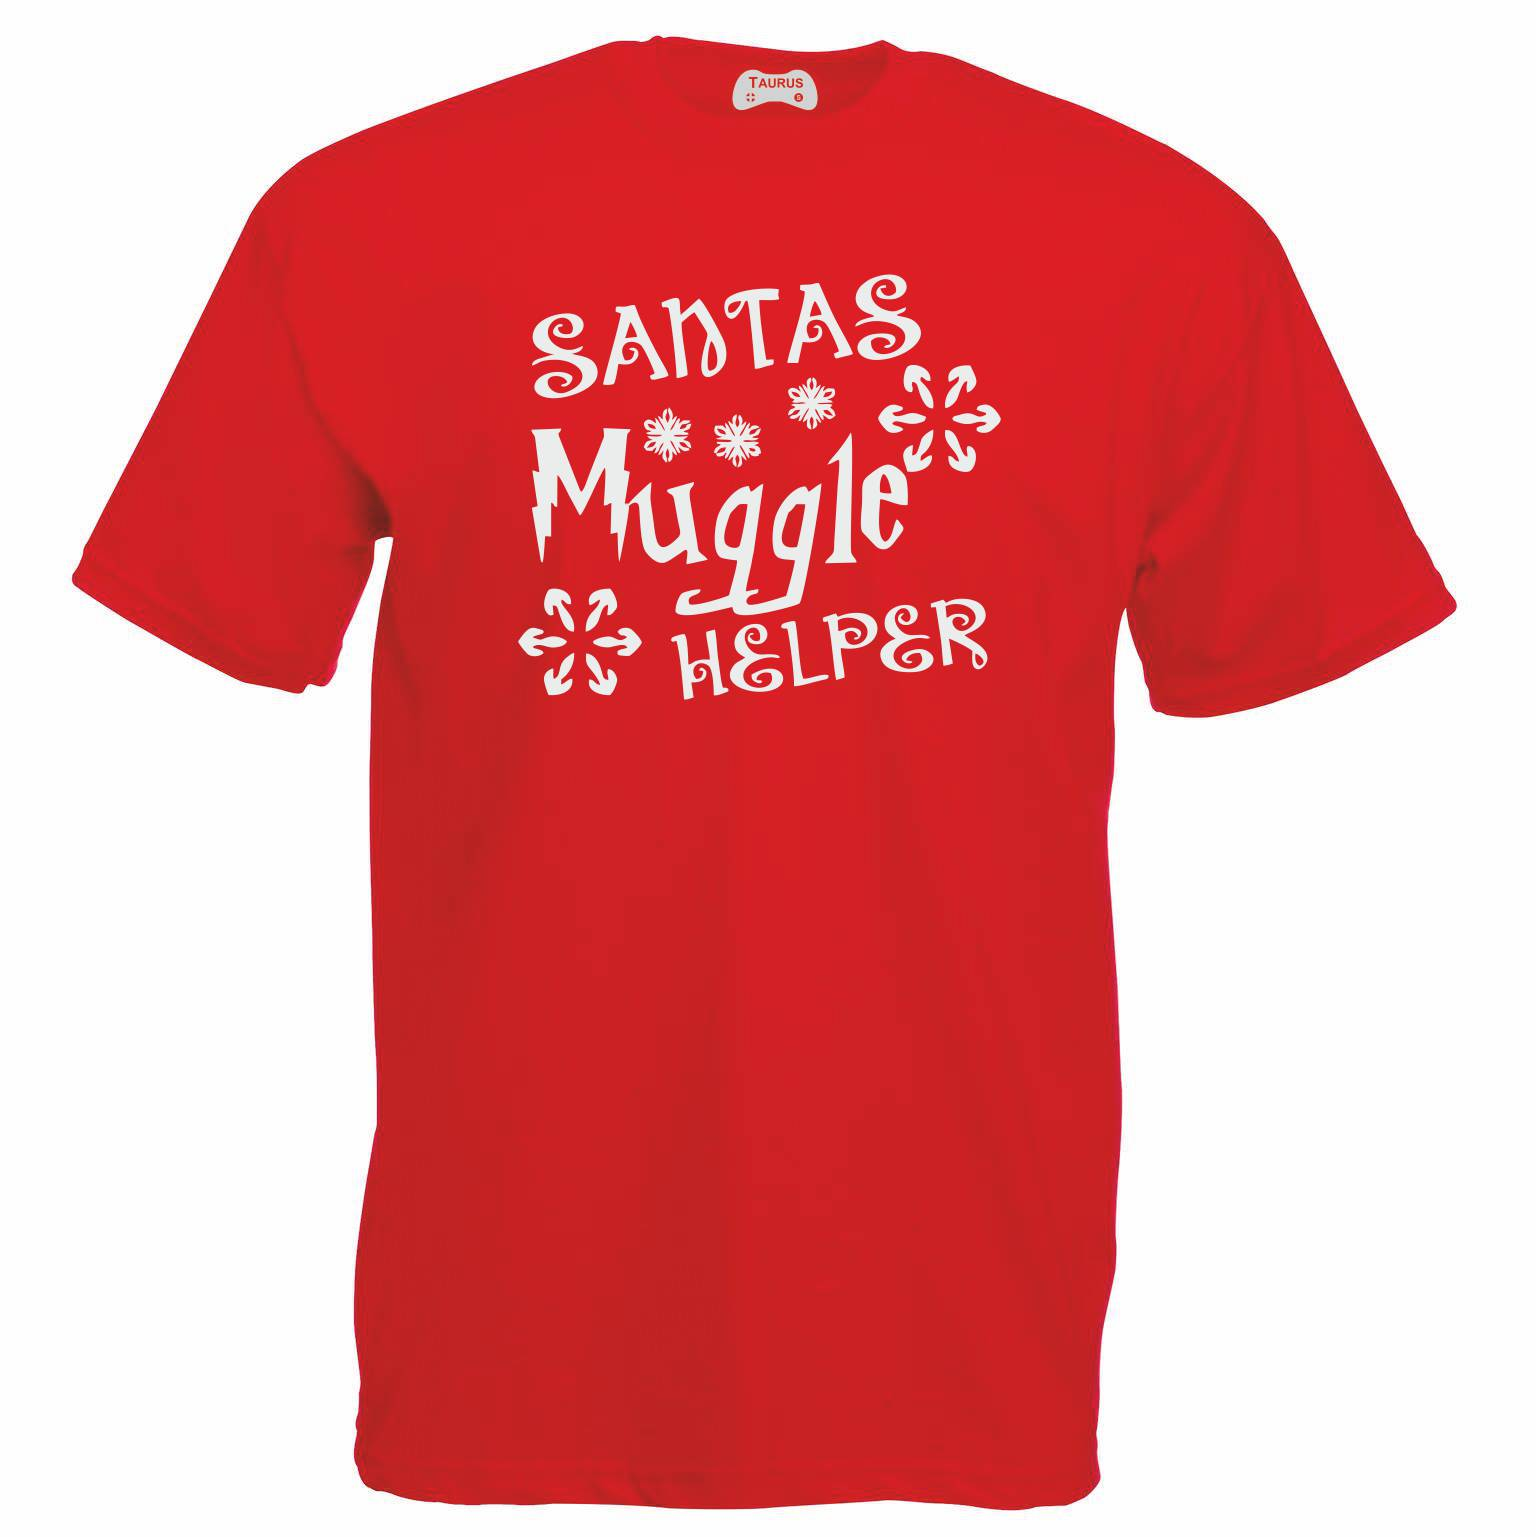 Santas Muggle Helper T-Shirt